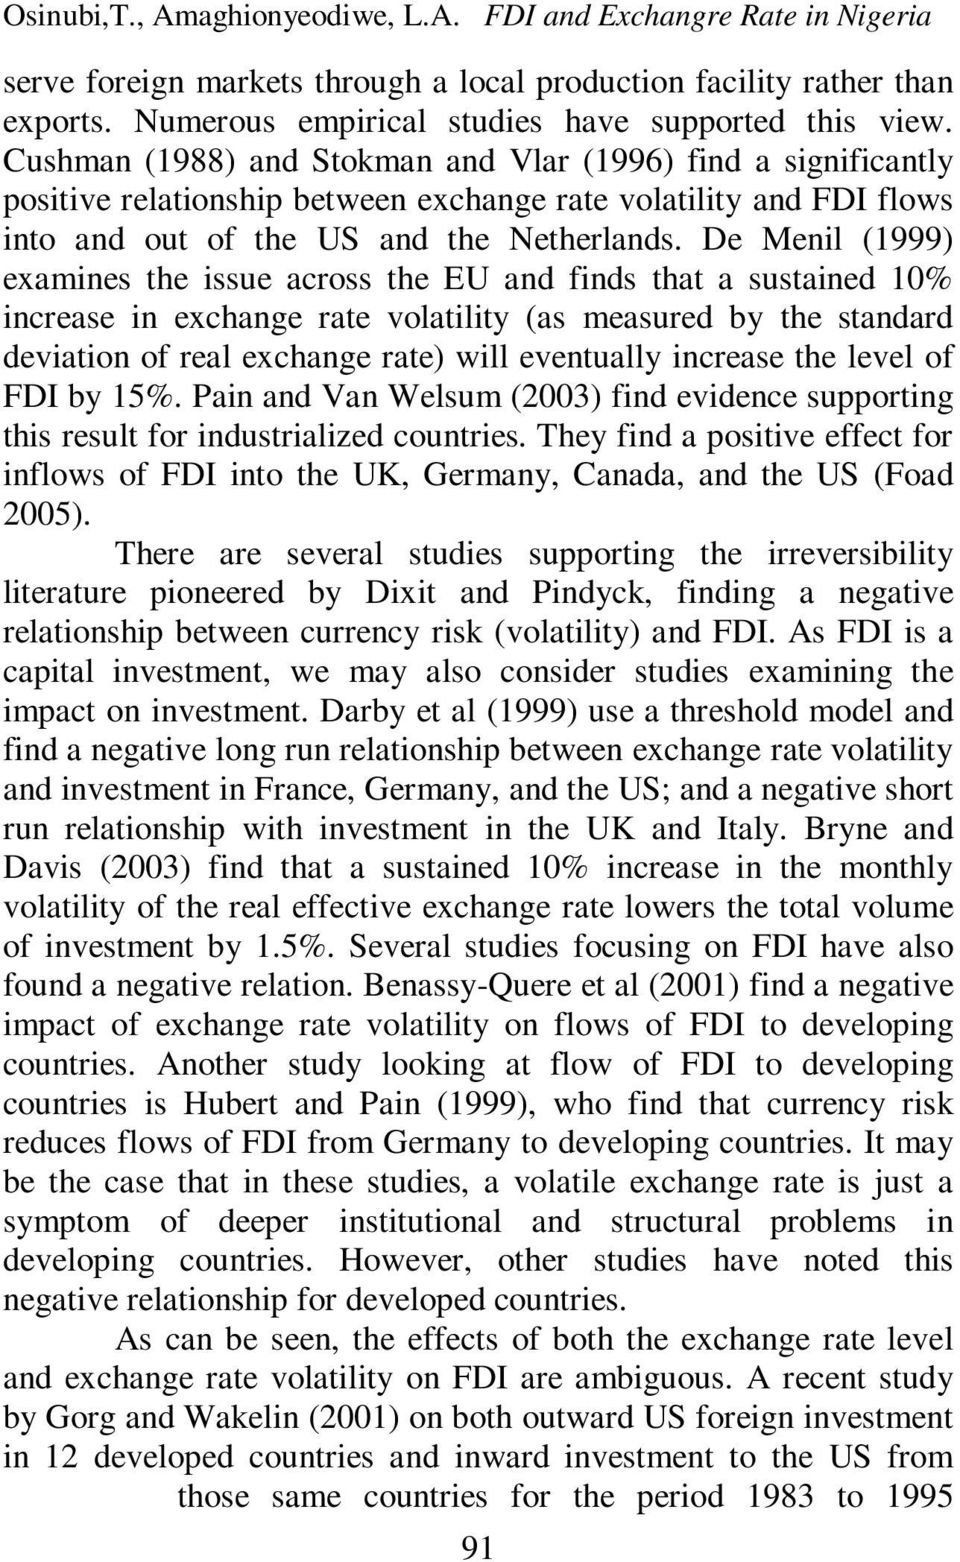 De Menil (1999) examines the issue across the EU and finds that a sustained 10% increase in exchange rate volatility (as measured by the standard deviation of real exchange rate) will eventually